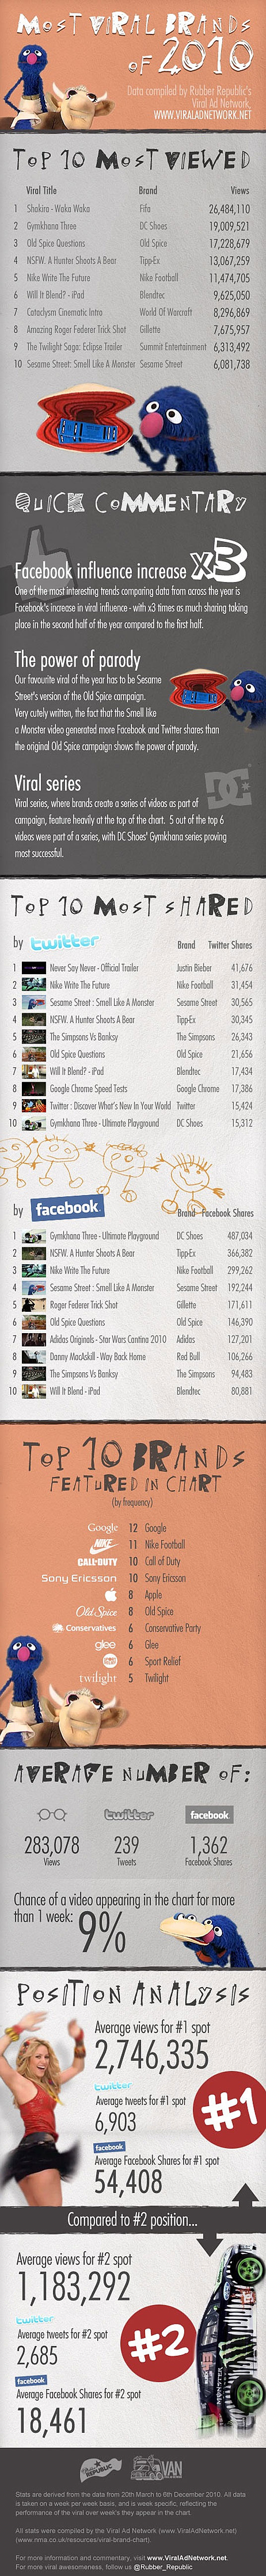 Viral Brands of 2010